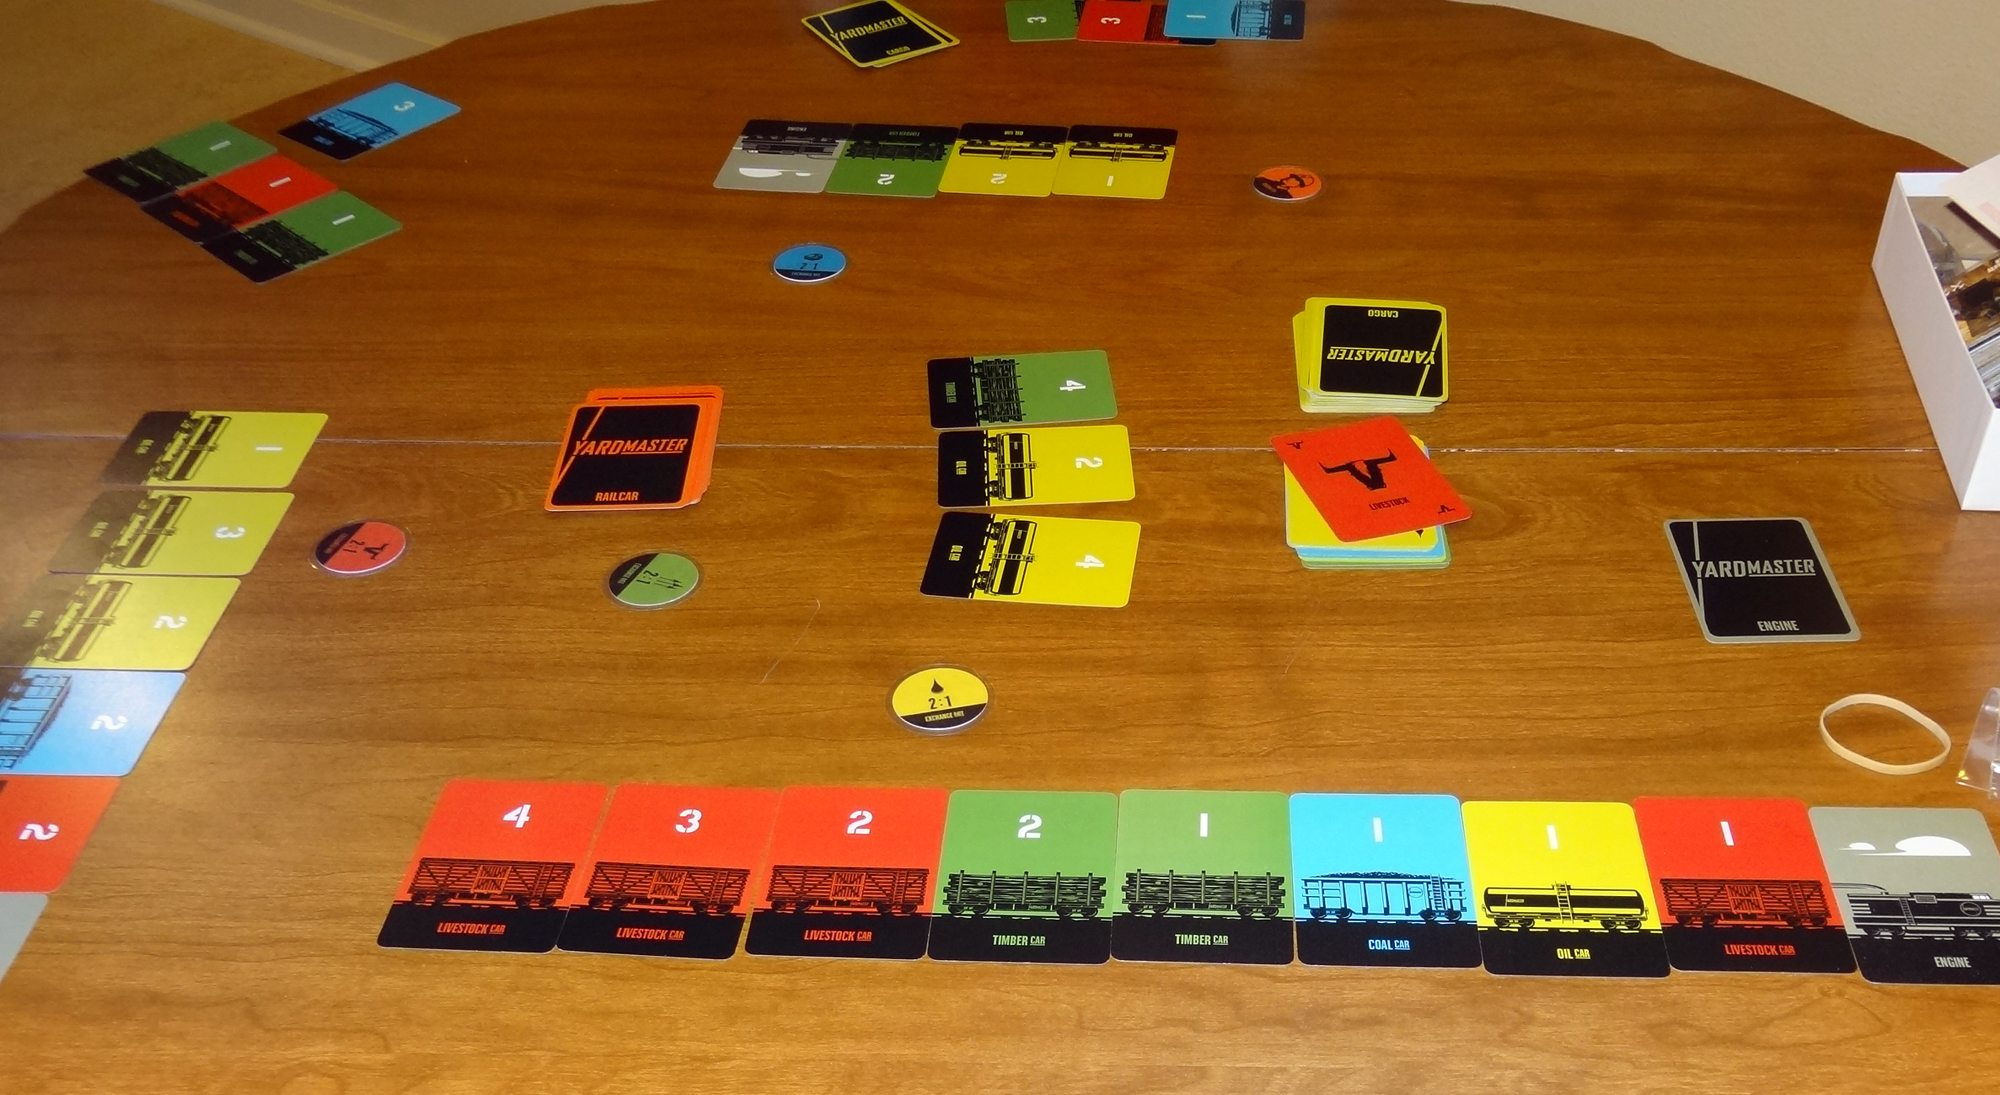 Yardmaster in play